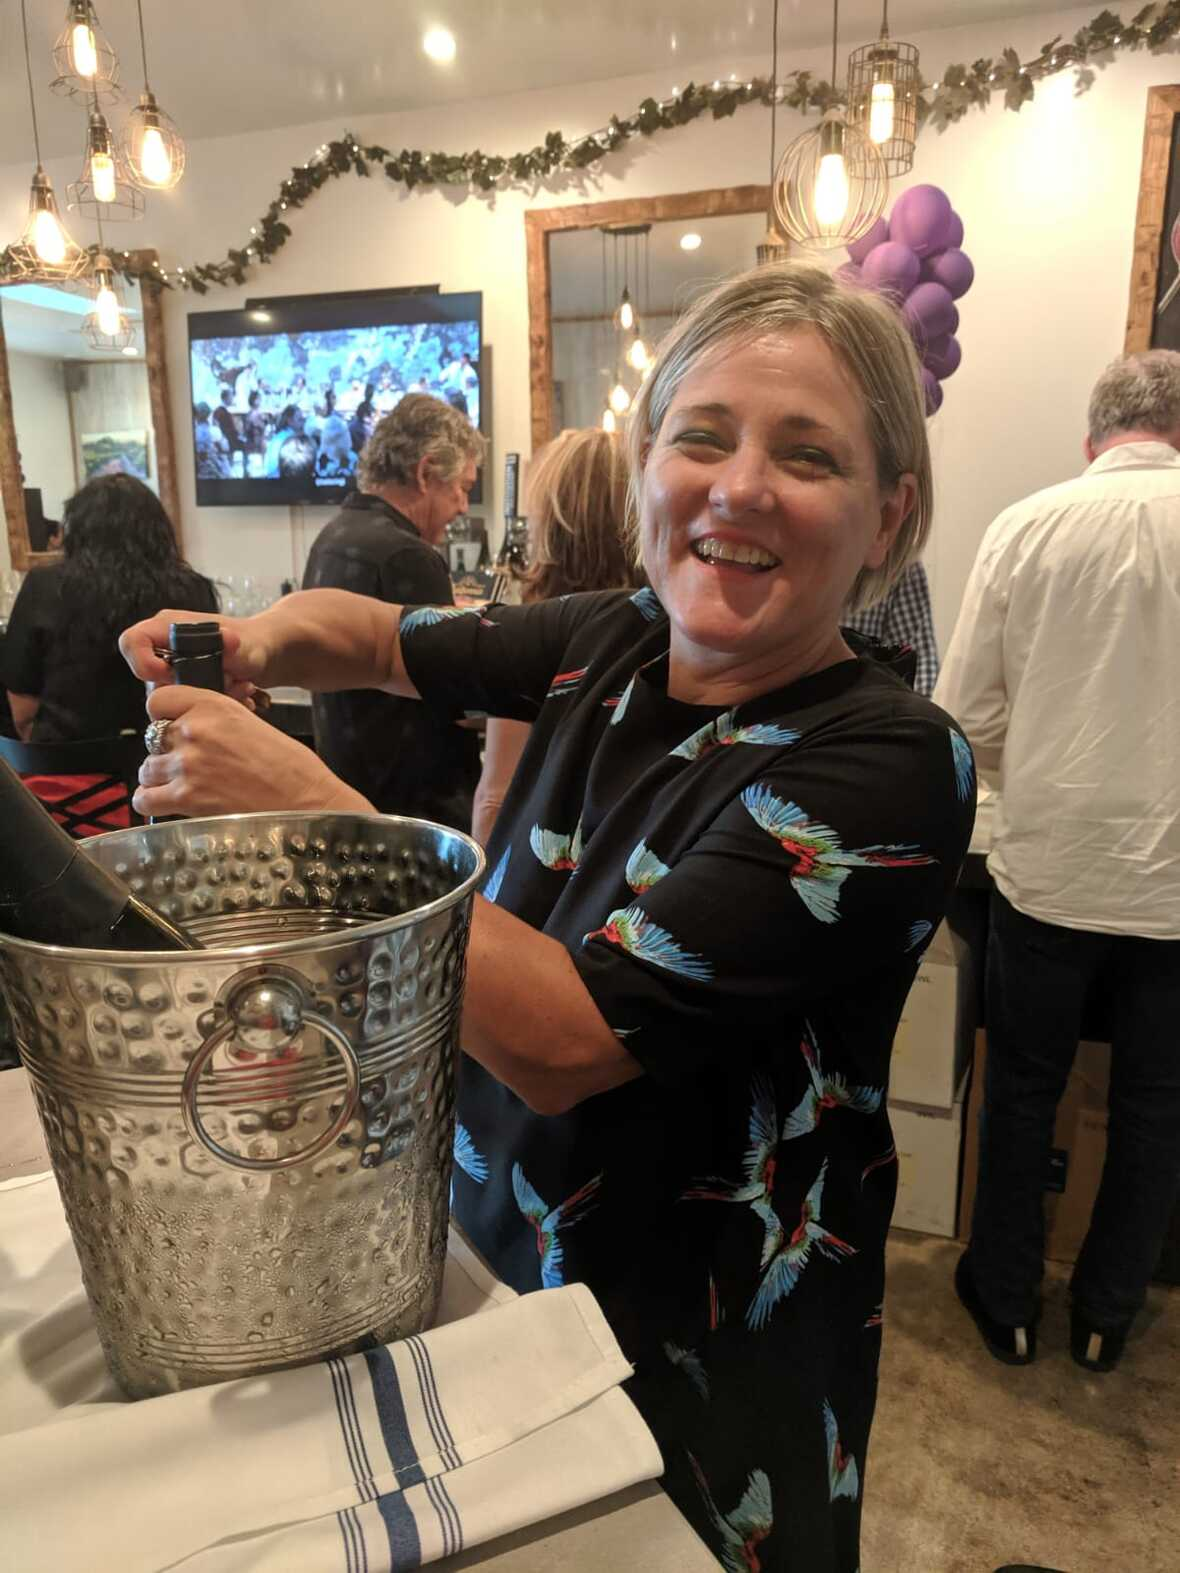 Sheila Donohue Vero founder and sommelier 2019